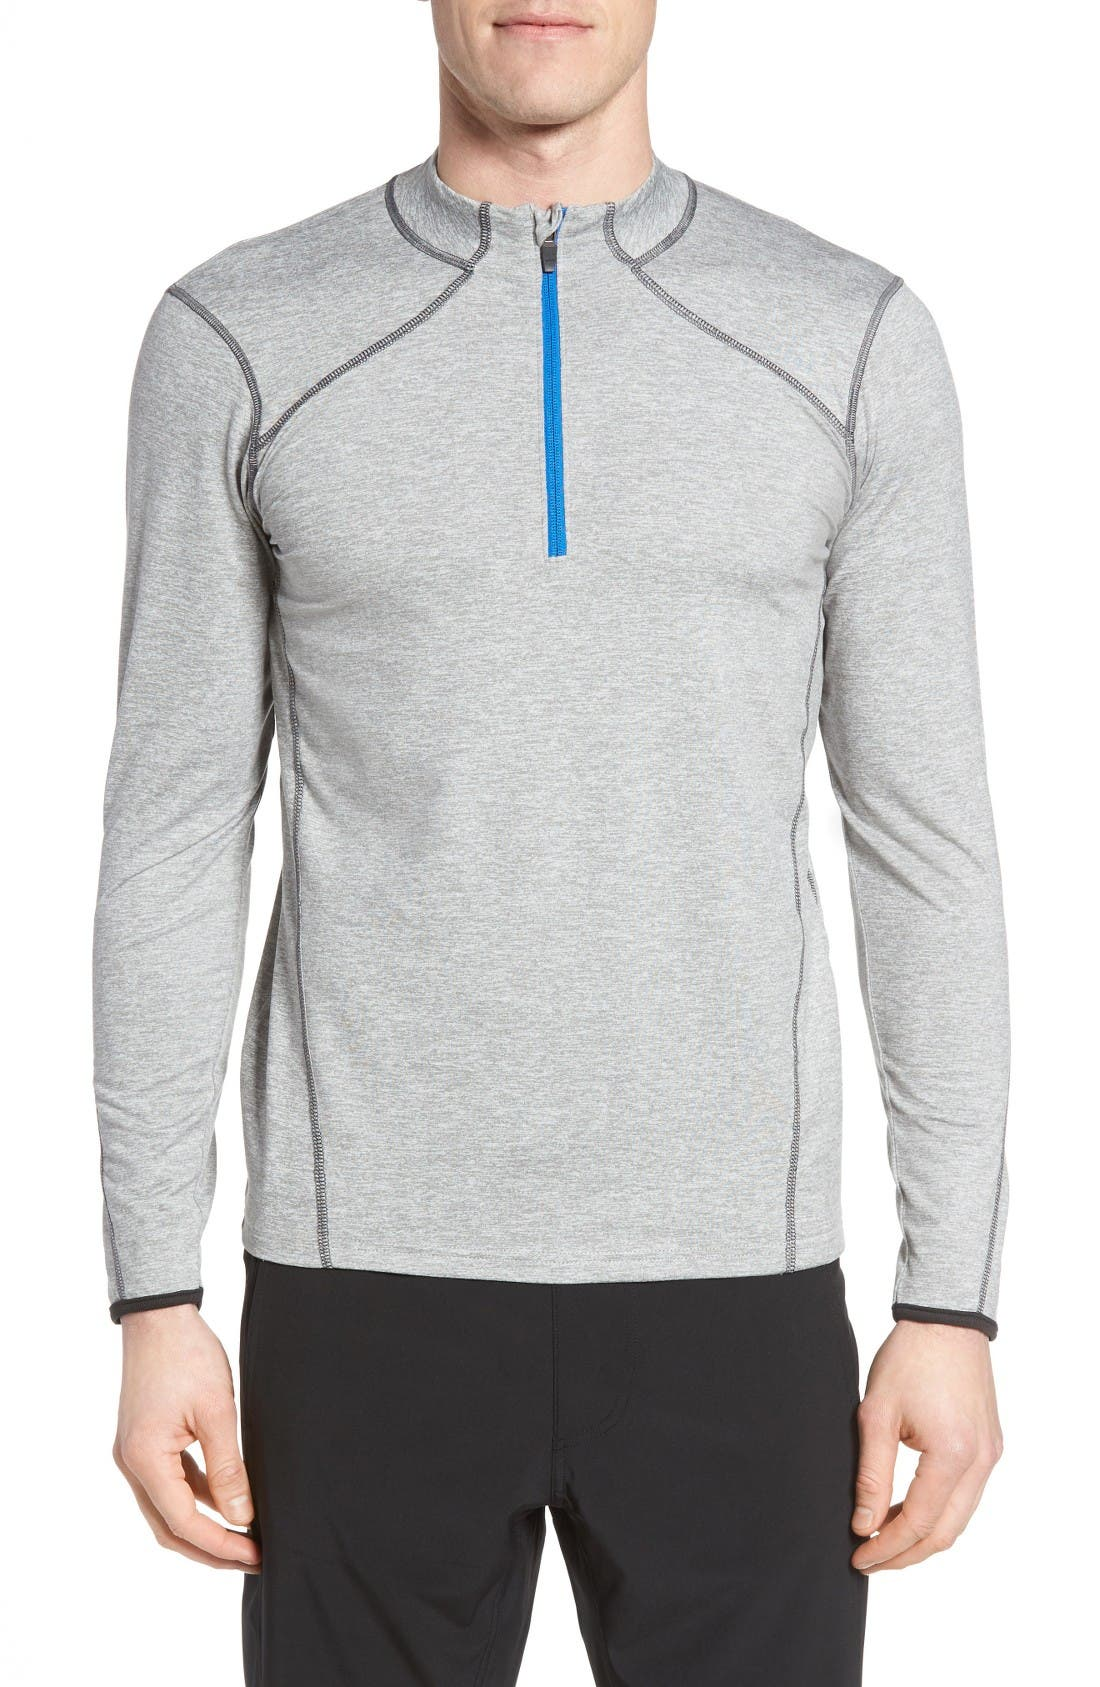 SODO 'Elevate' Moisture Wicking Stretch Quarter Zip Pullover